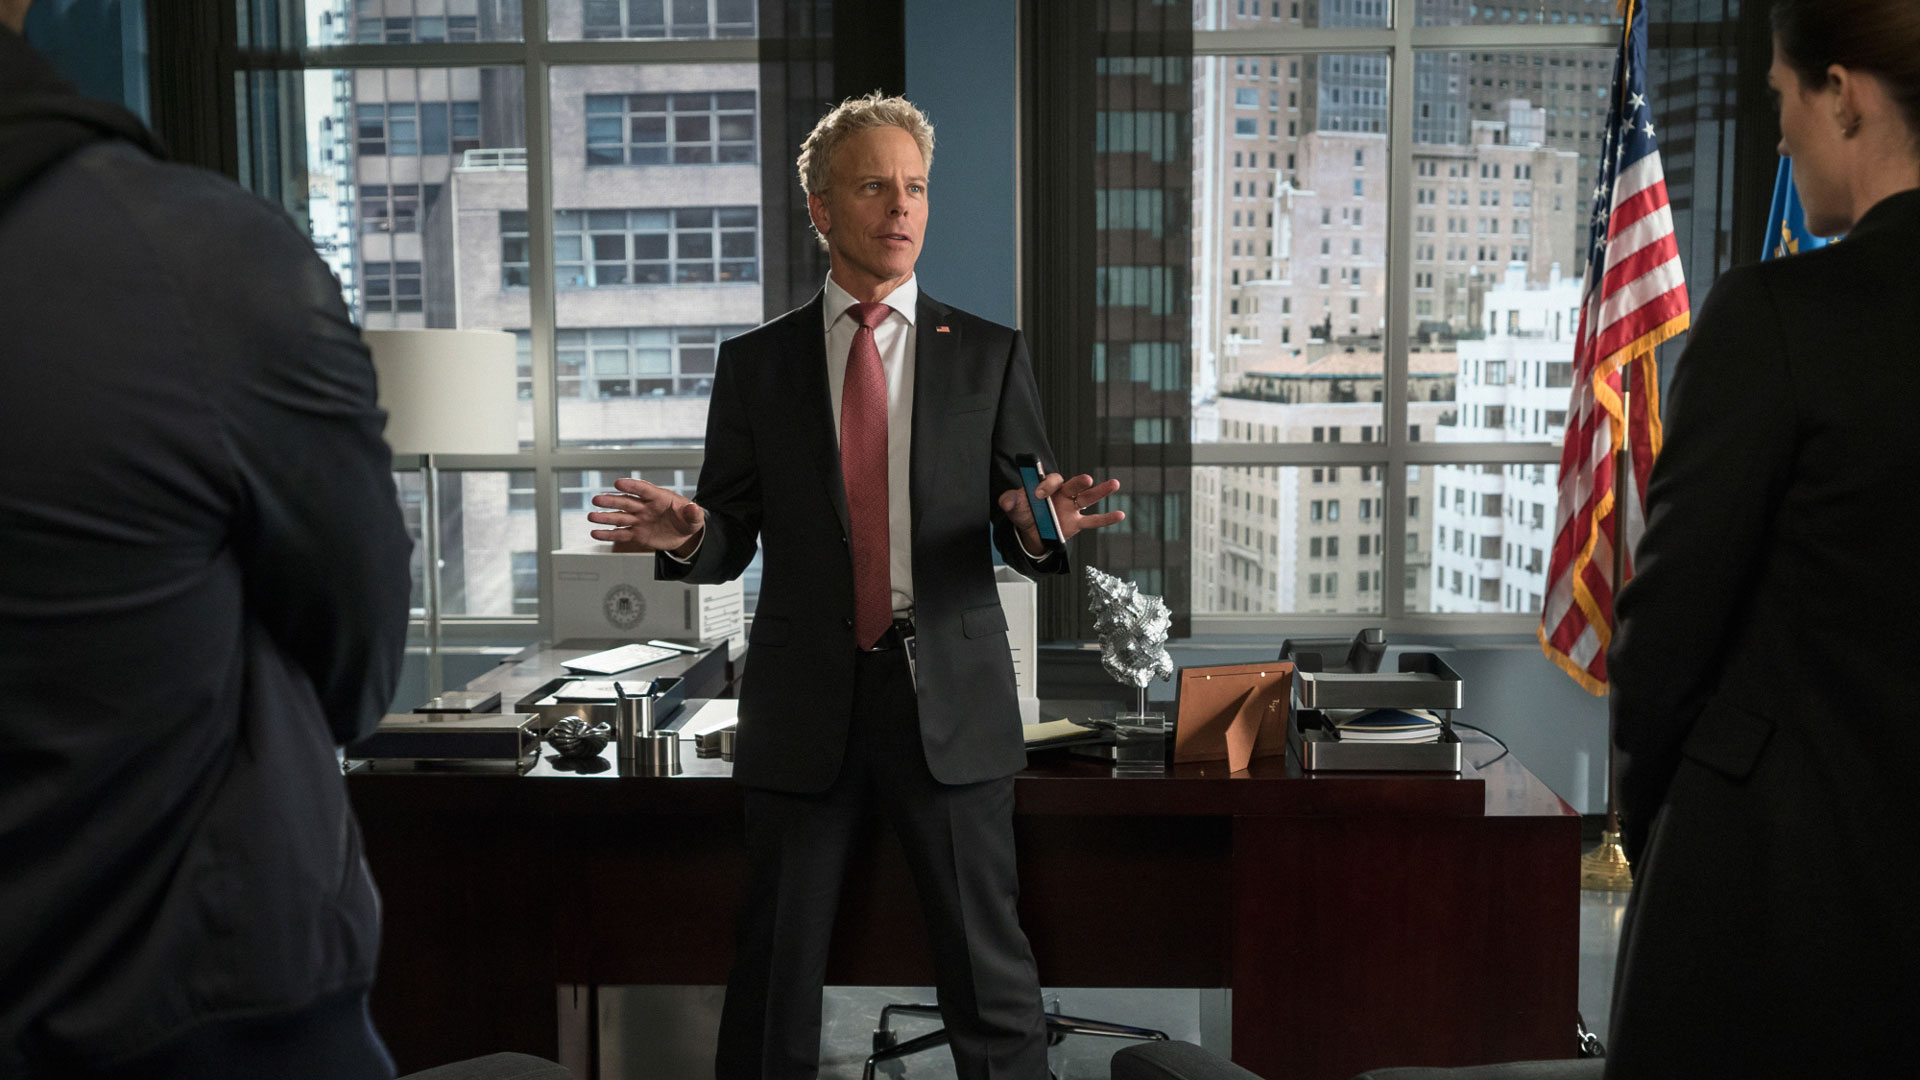 Greg Germann as ADIC Grady Johnson